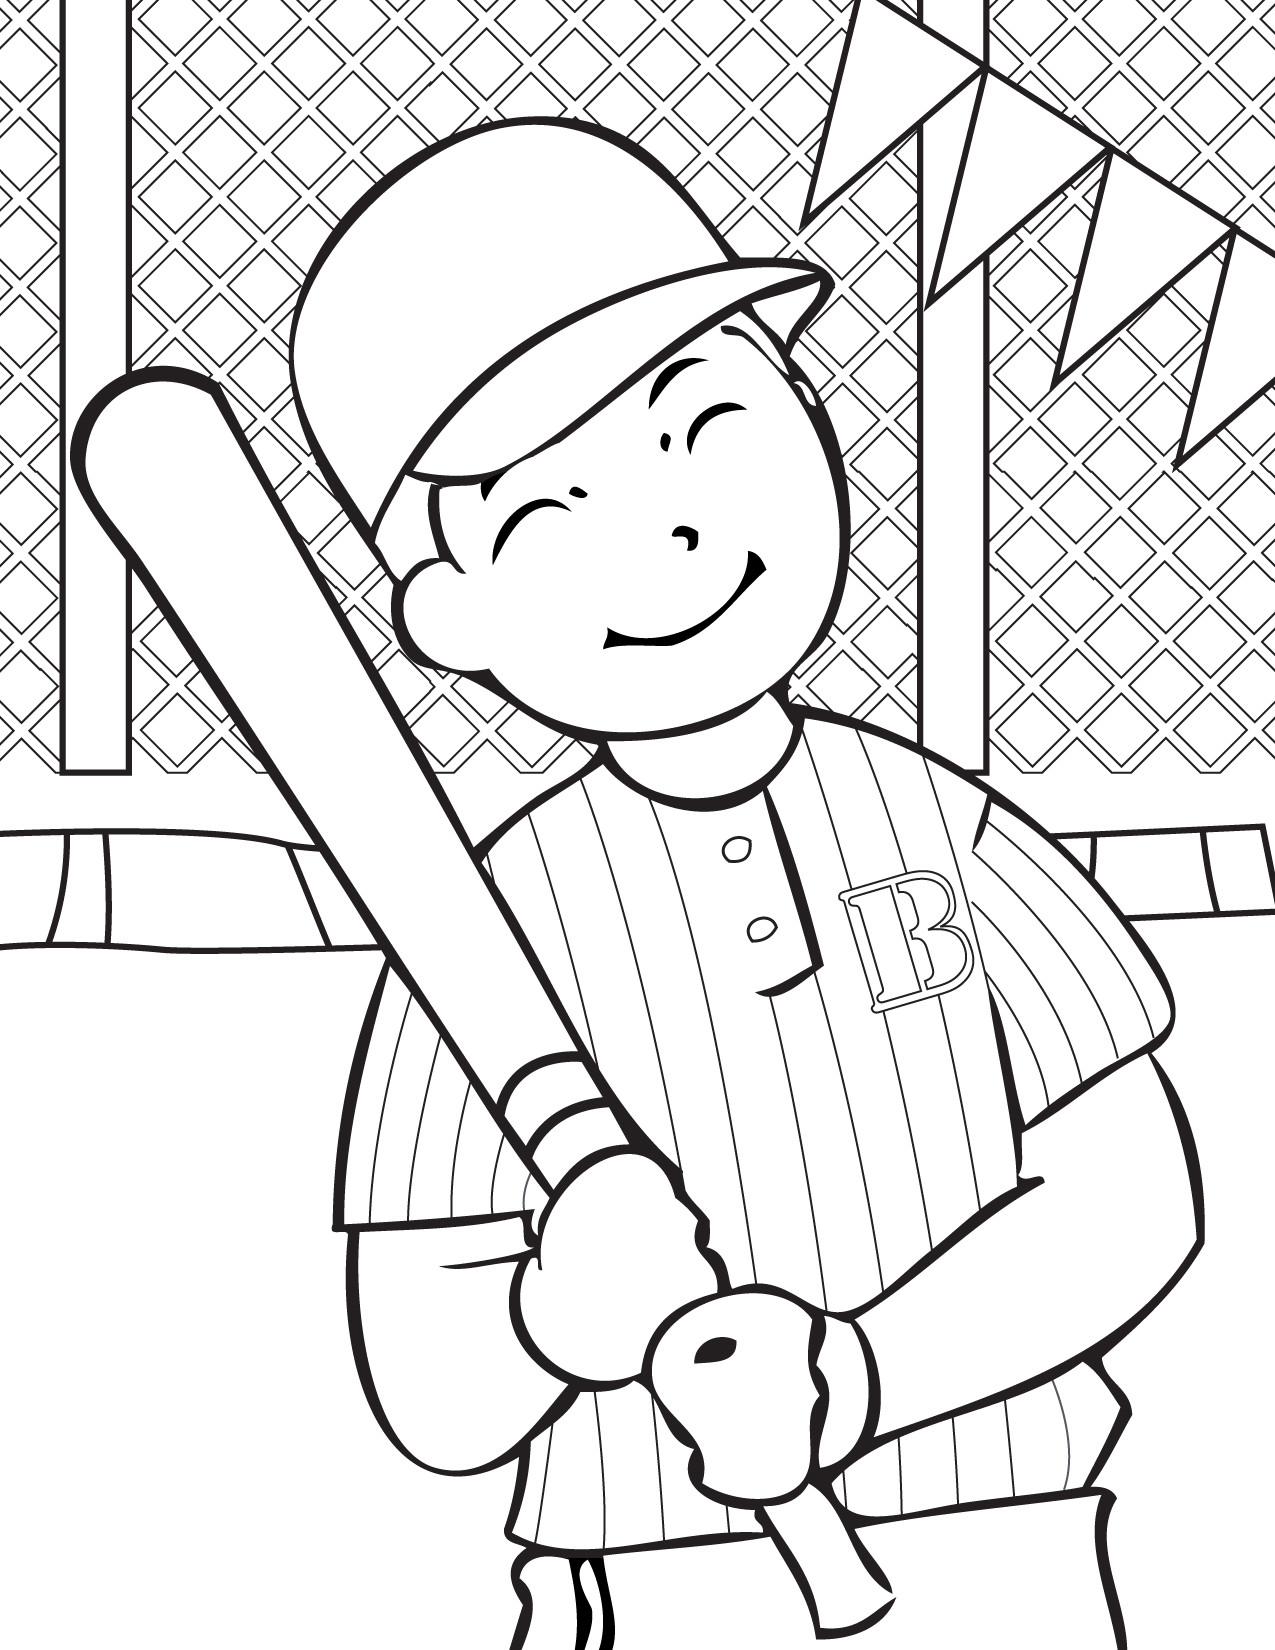 Best ideas about Sports Printable Coloring Pages . Save or Pin printable sports coloring pages for kids free printable Now.